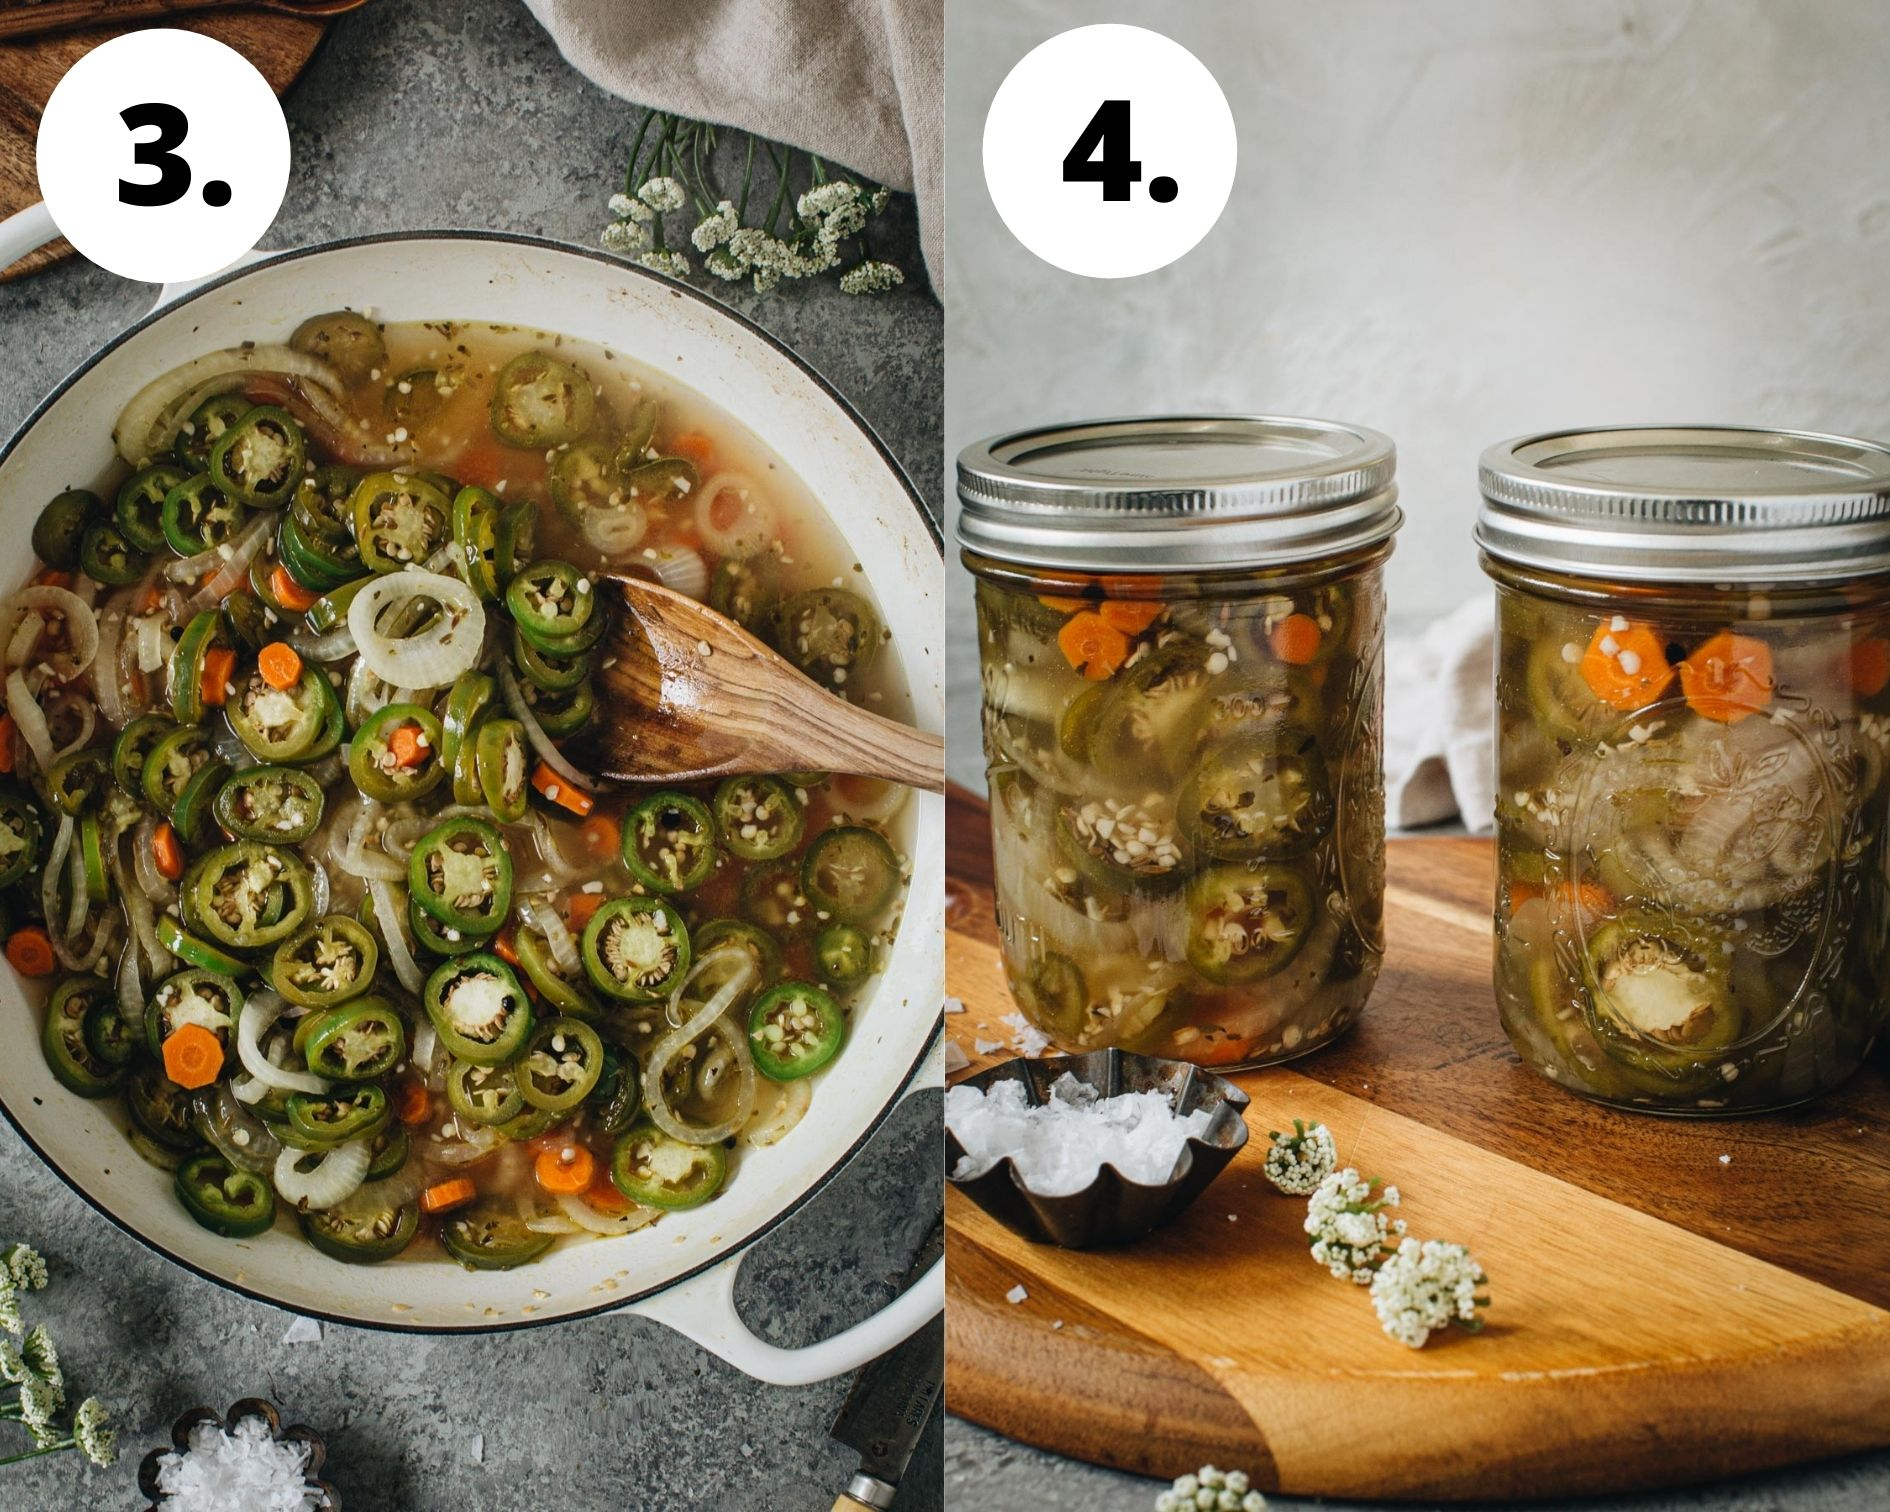 Pickled jalapenos and carrots process steps 3 and 4.